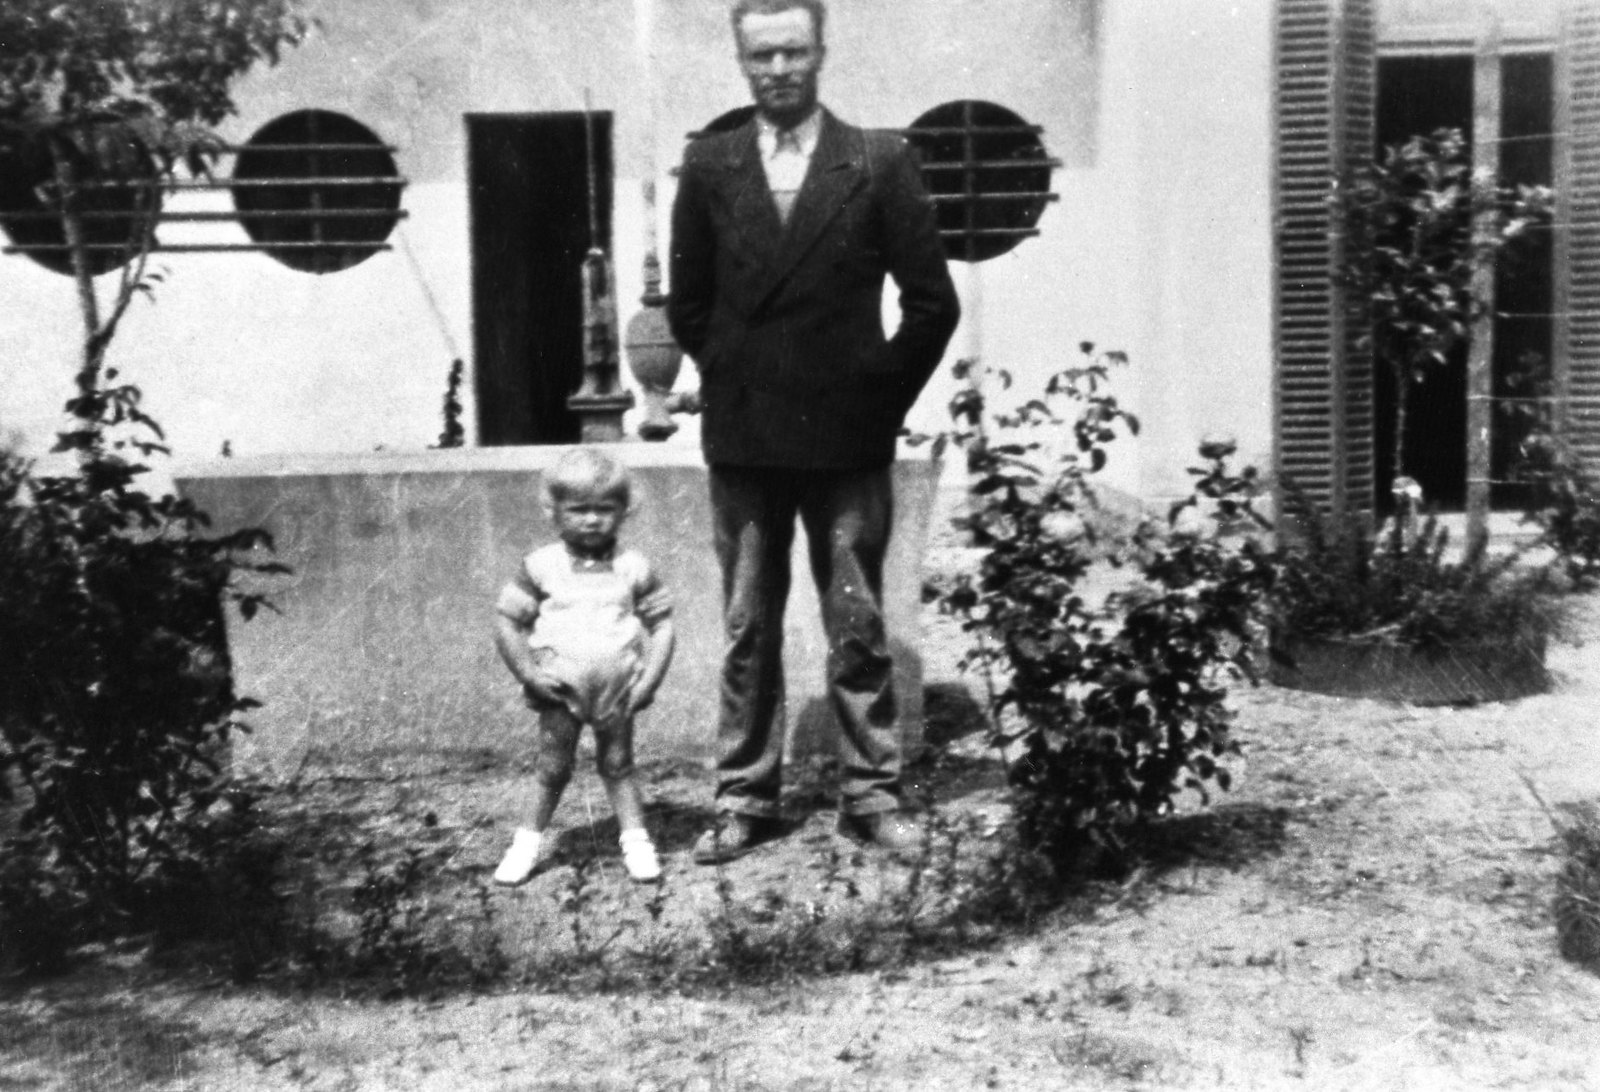 A young Luis standing with his father, Luis Palau Sr., outside their home in Ingeniero Maschwitz, Argentina (1937).